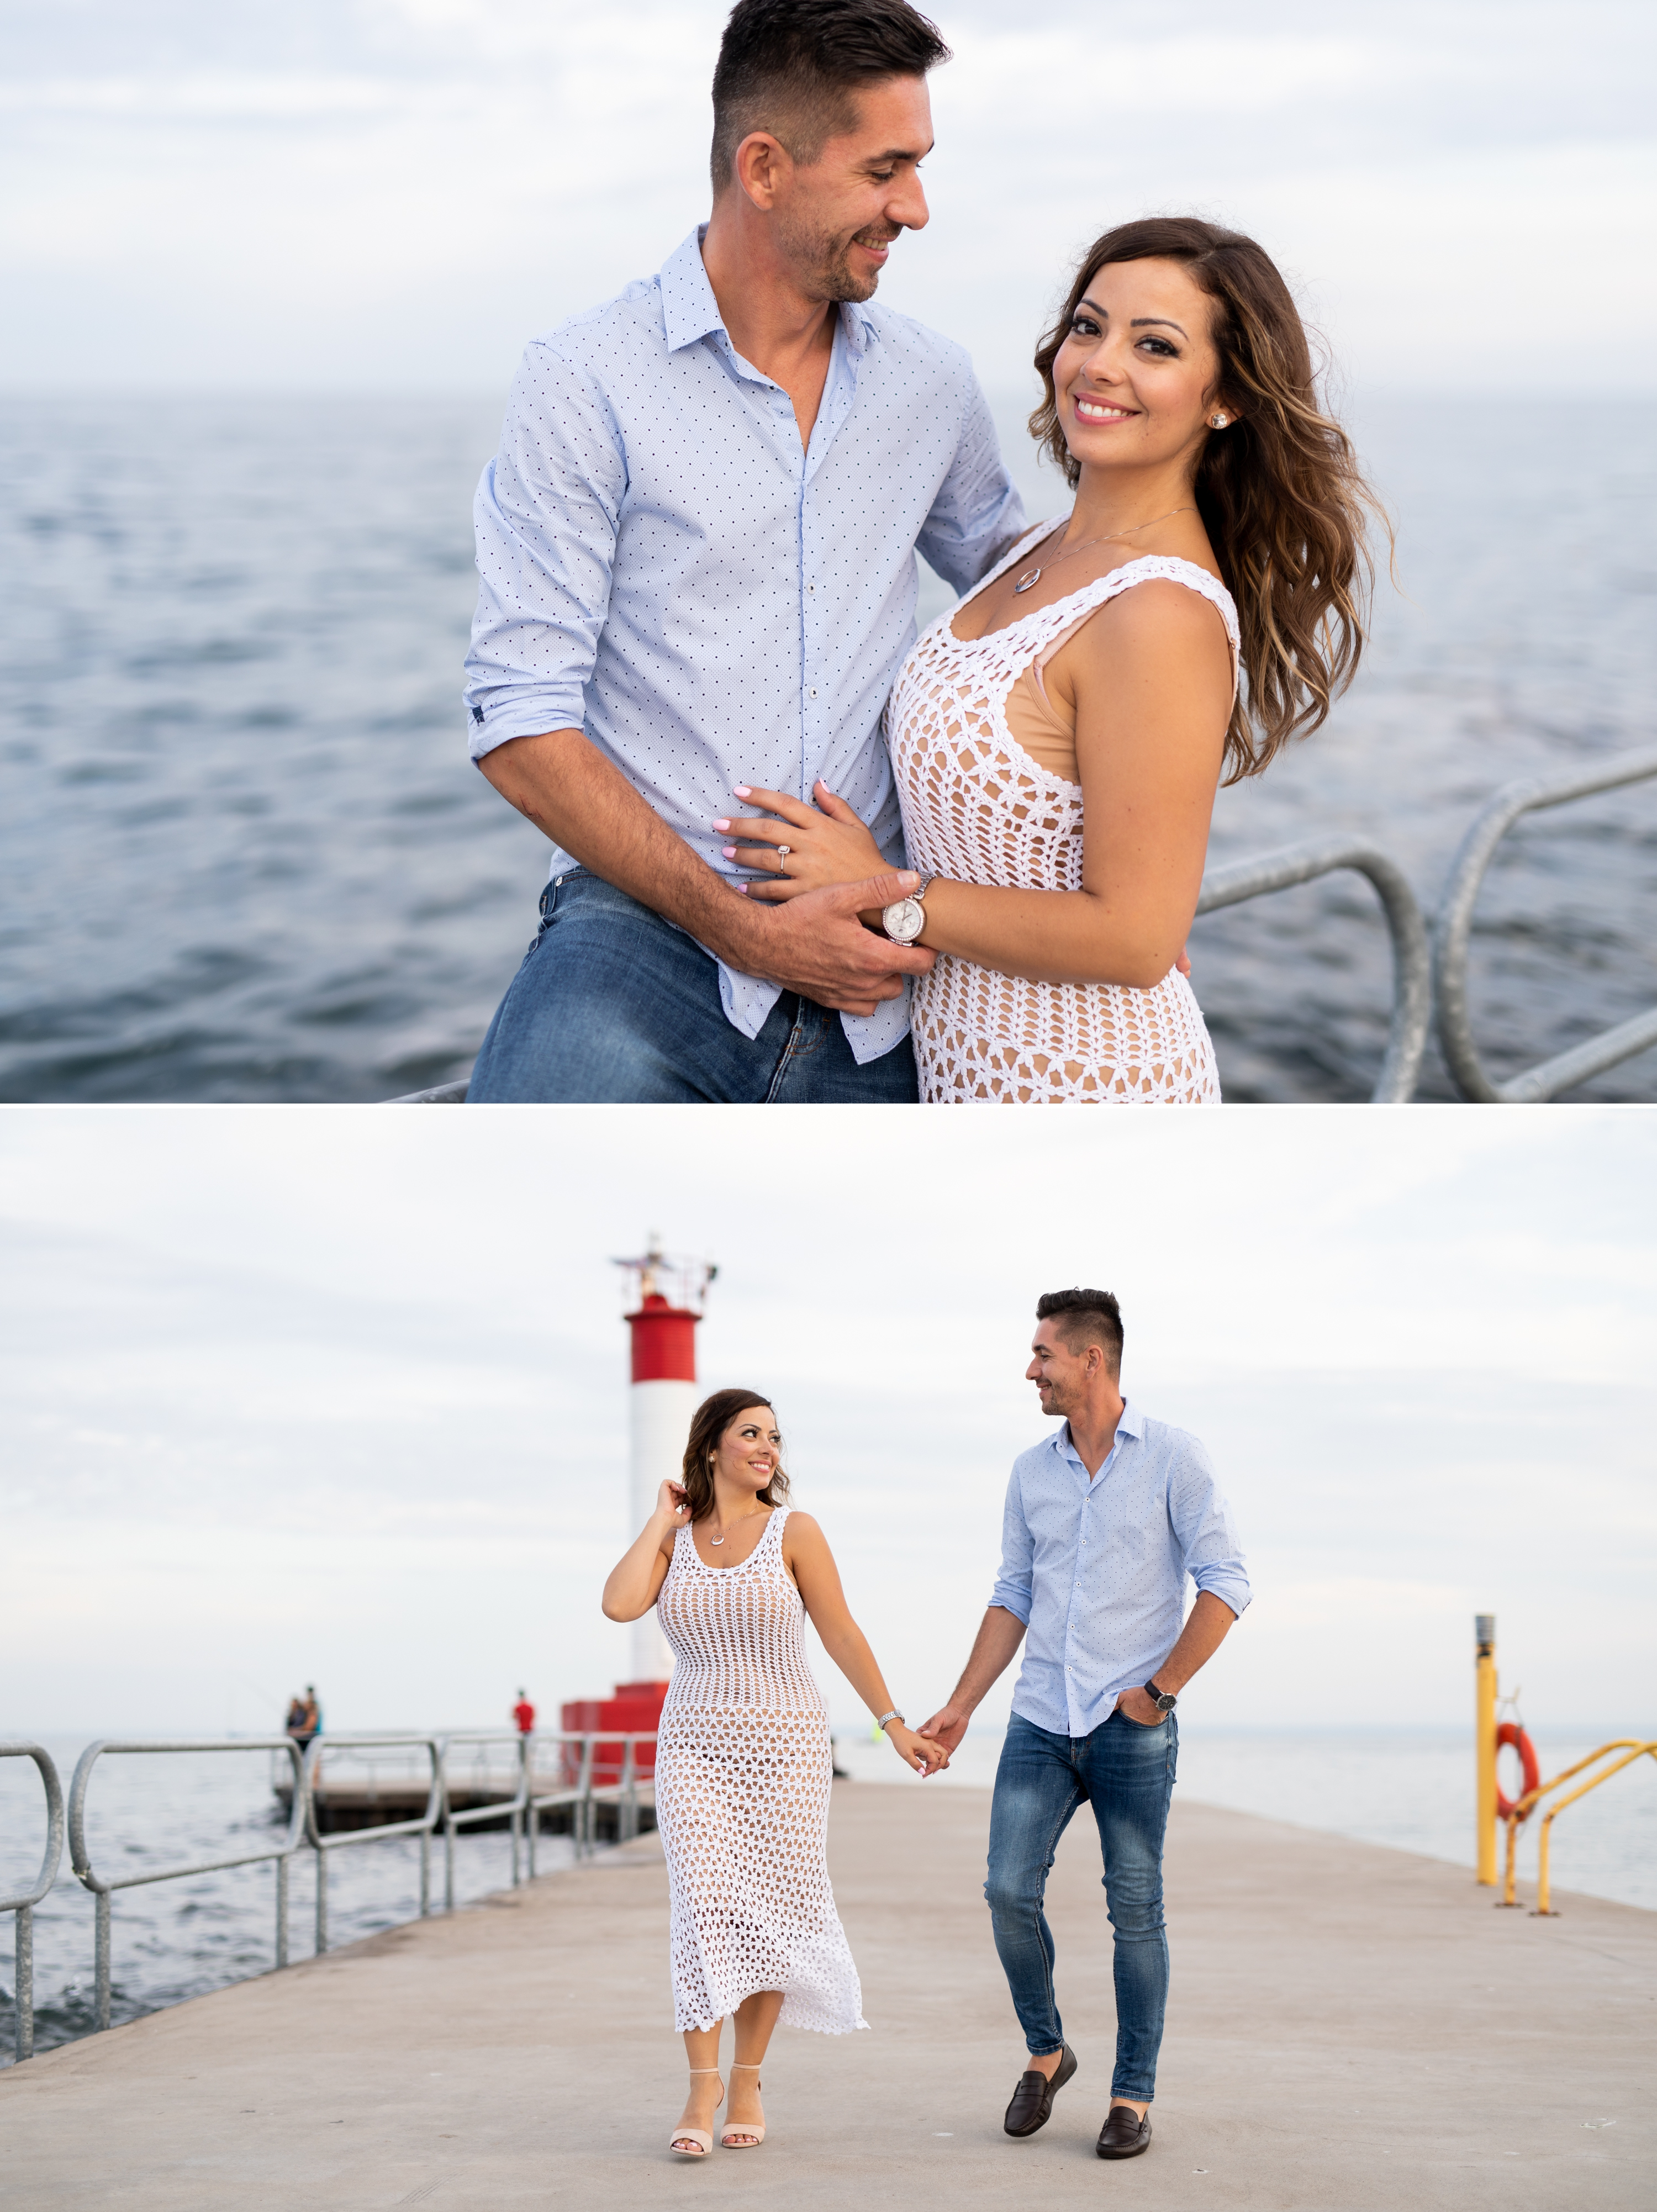 Lighthouse Walk Pier Emoke and Erno Engagement Oakville Pier Zsuzsi Pal Photography